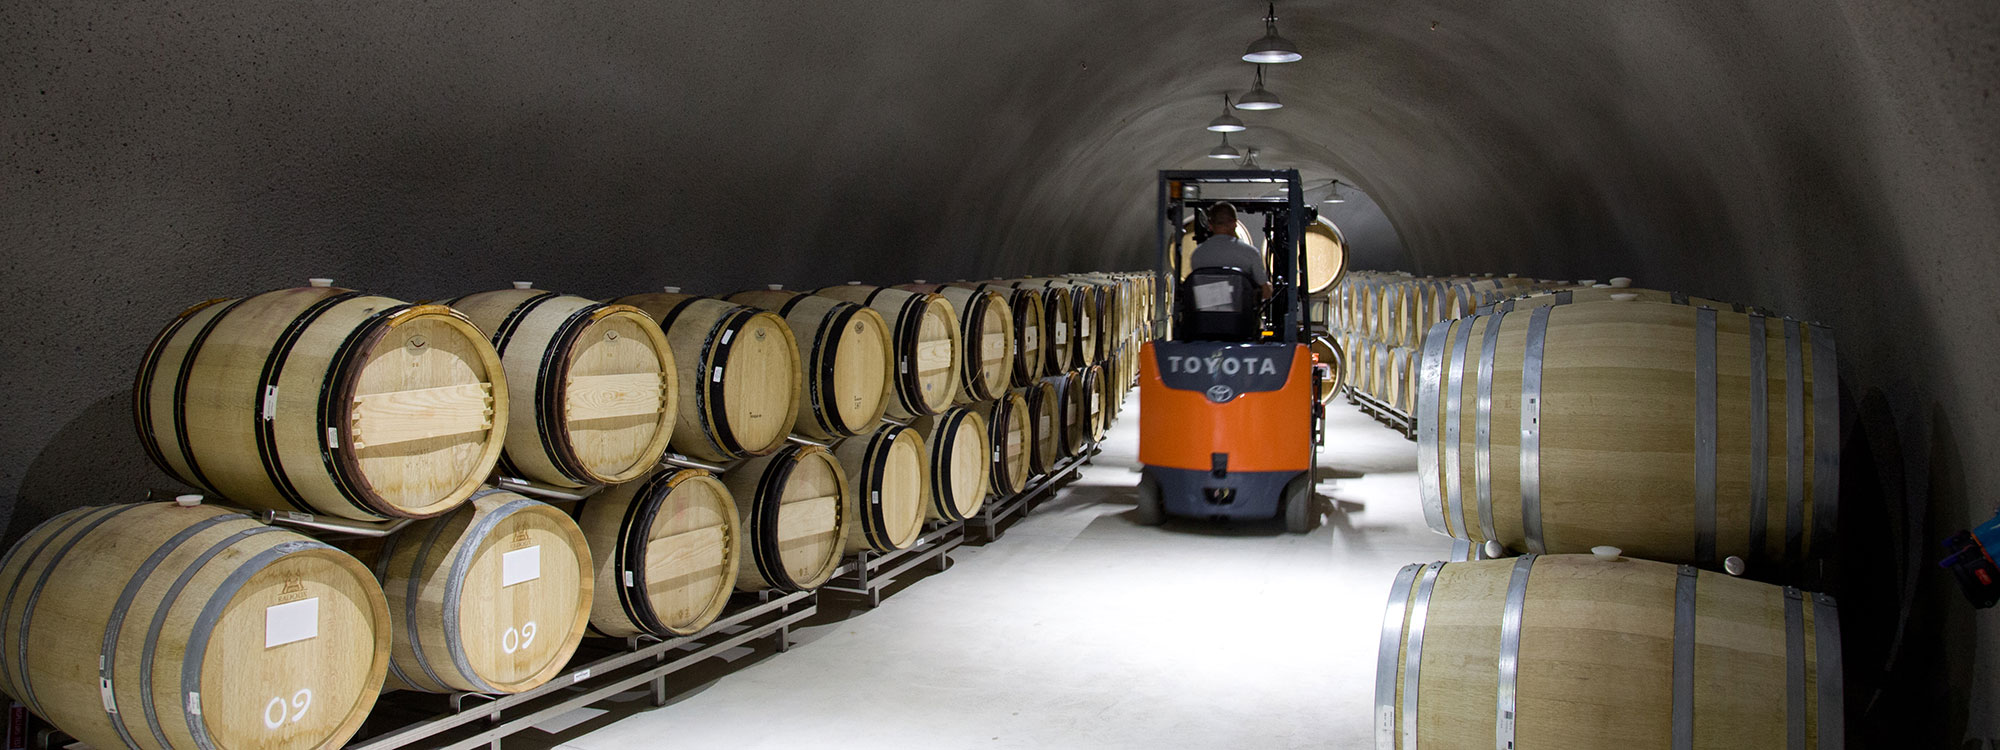 Winery Storage Caves Builder - Paso Robles, CA - JW Design & Construction